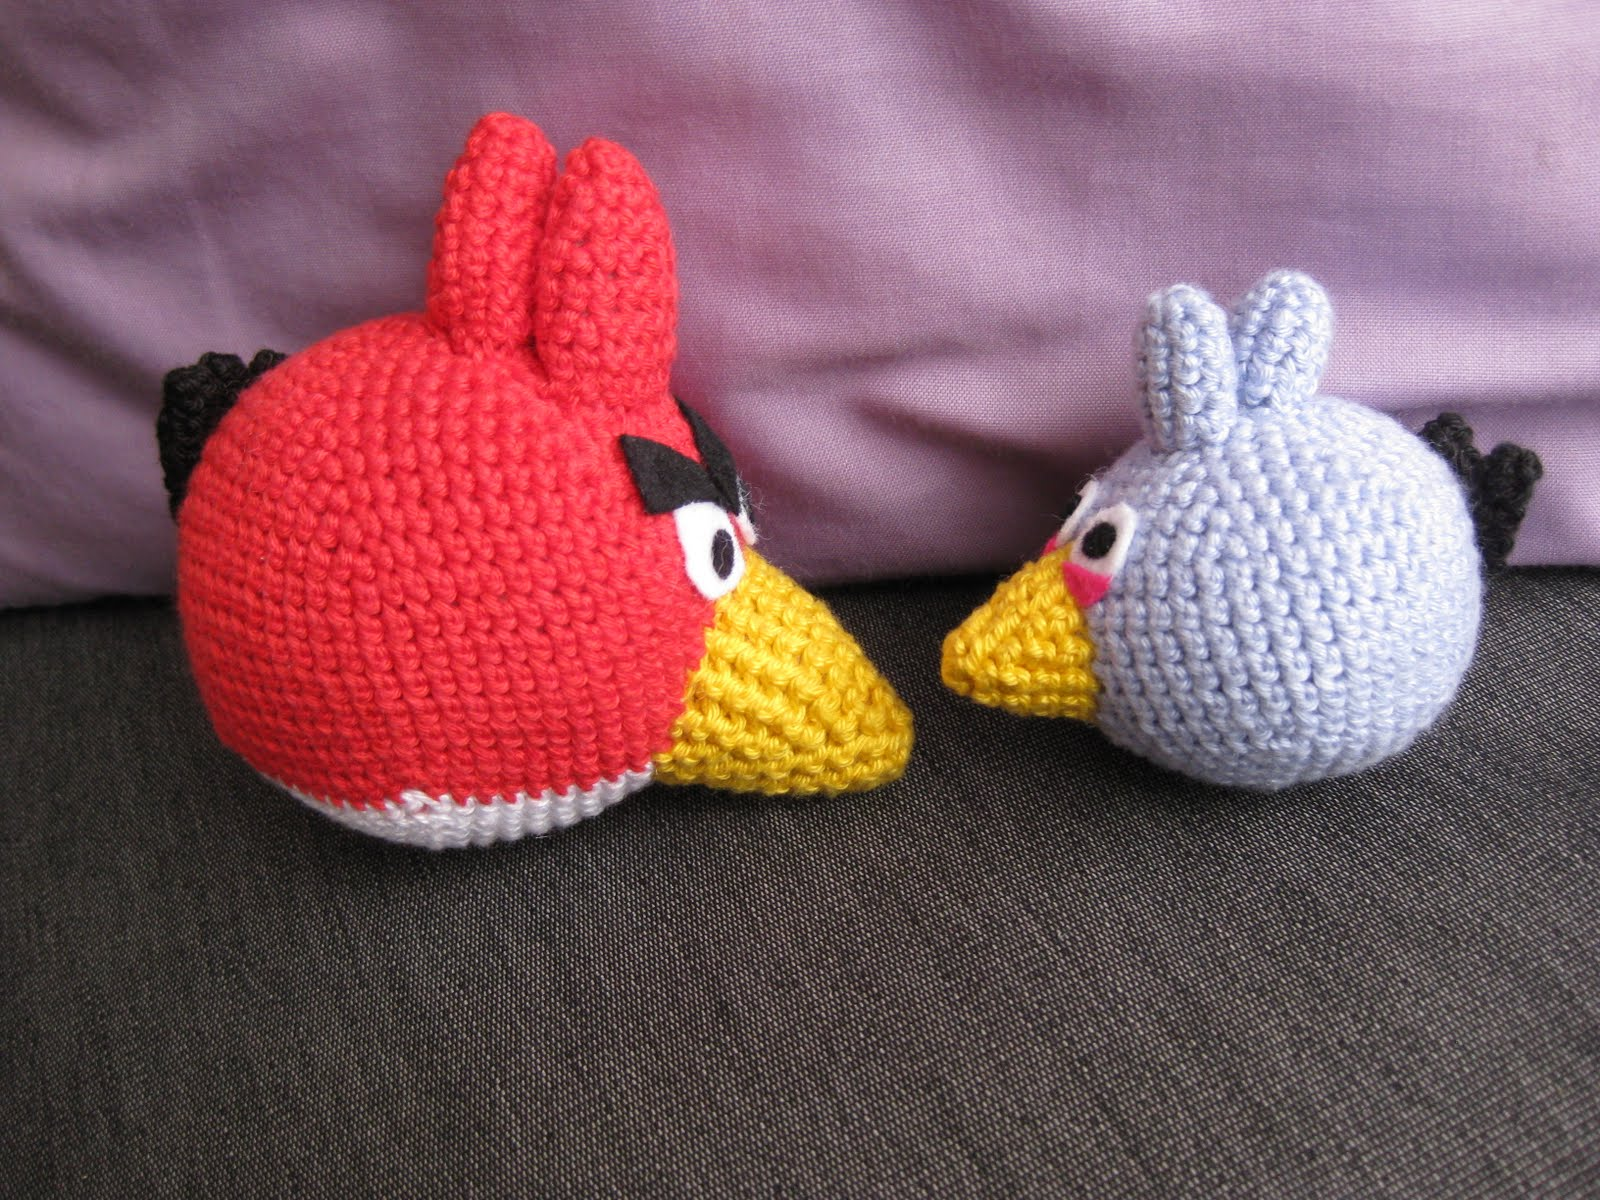 Olisushi imagine sa vie: Free pattern amigurumi angry birds